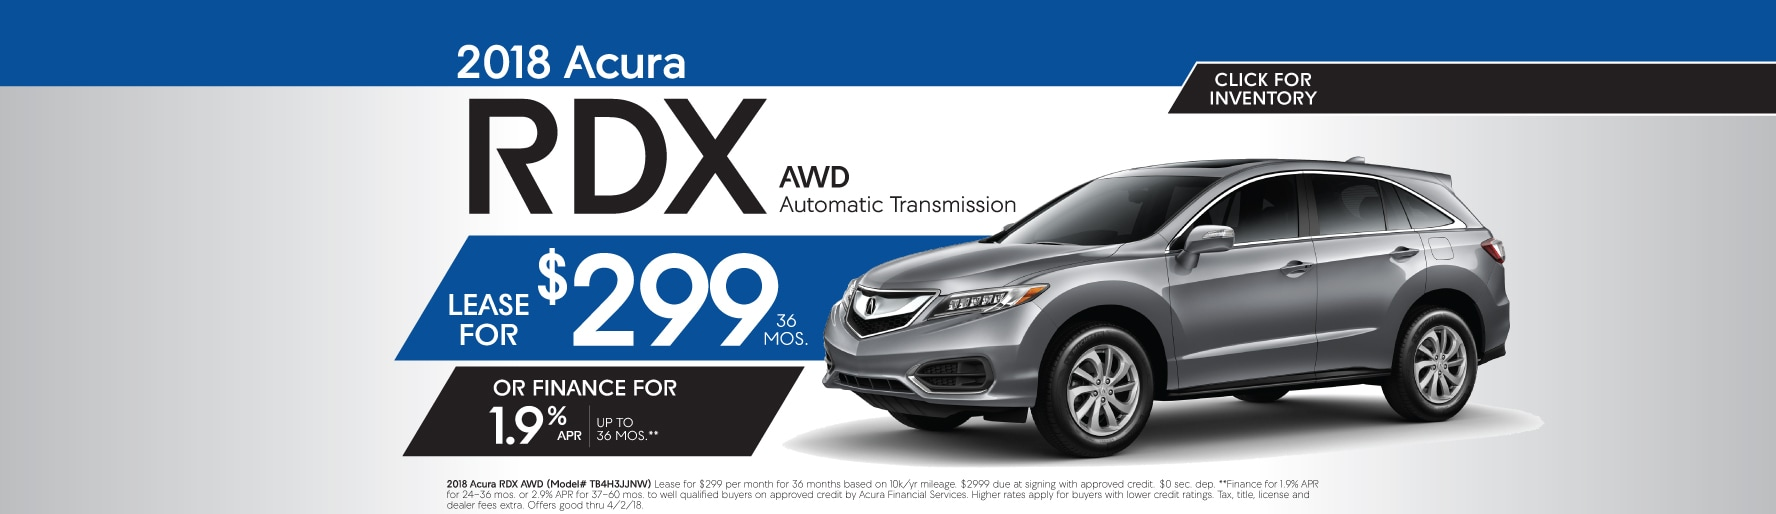 Acura Dealer In Greensburg PA Shop New Acura Vehicles Used Cars - Acura extended warranty cost